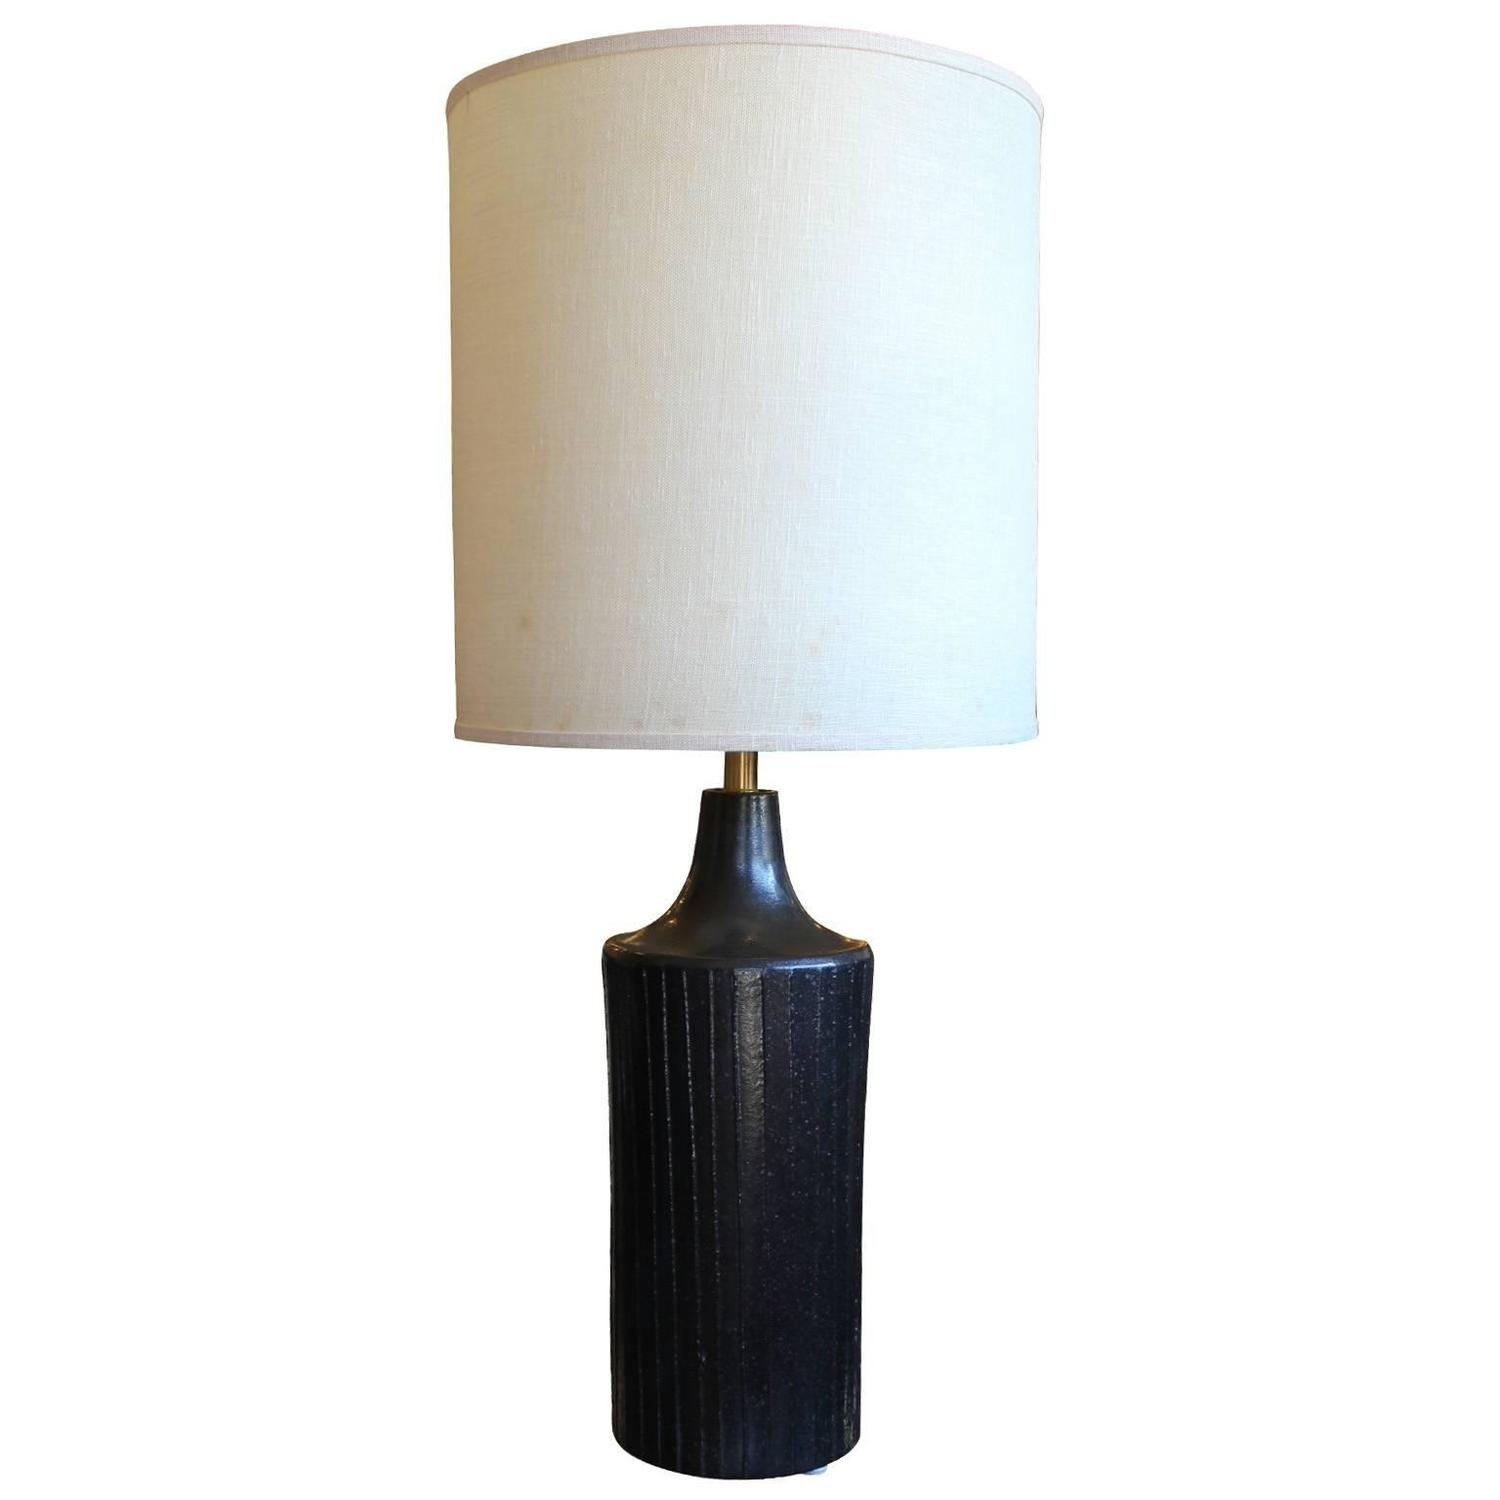 David cressey style ceramic table lamp at 1stdibs for Ceramic table lamps